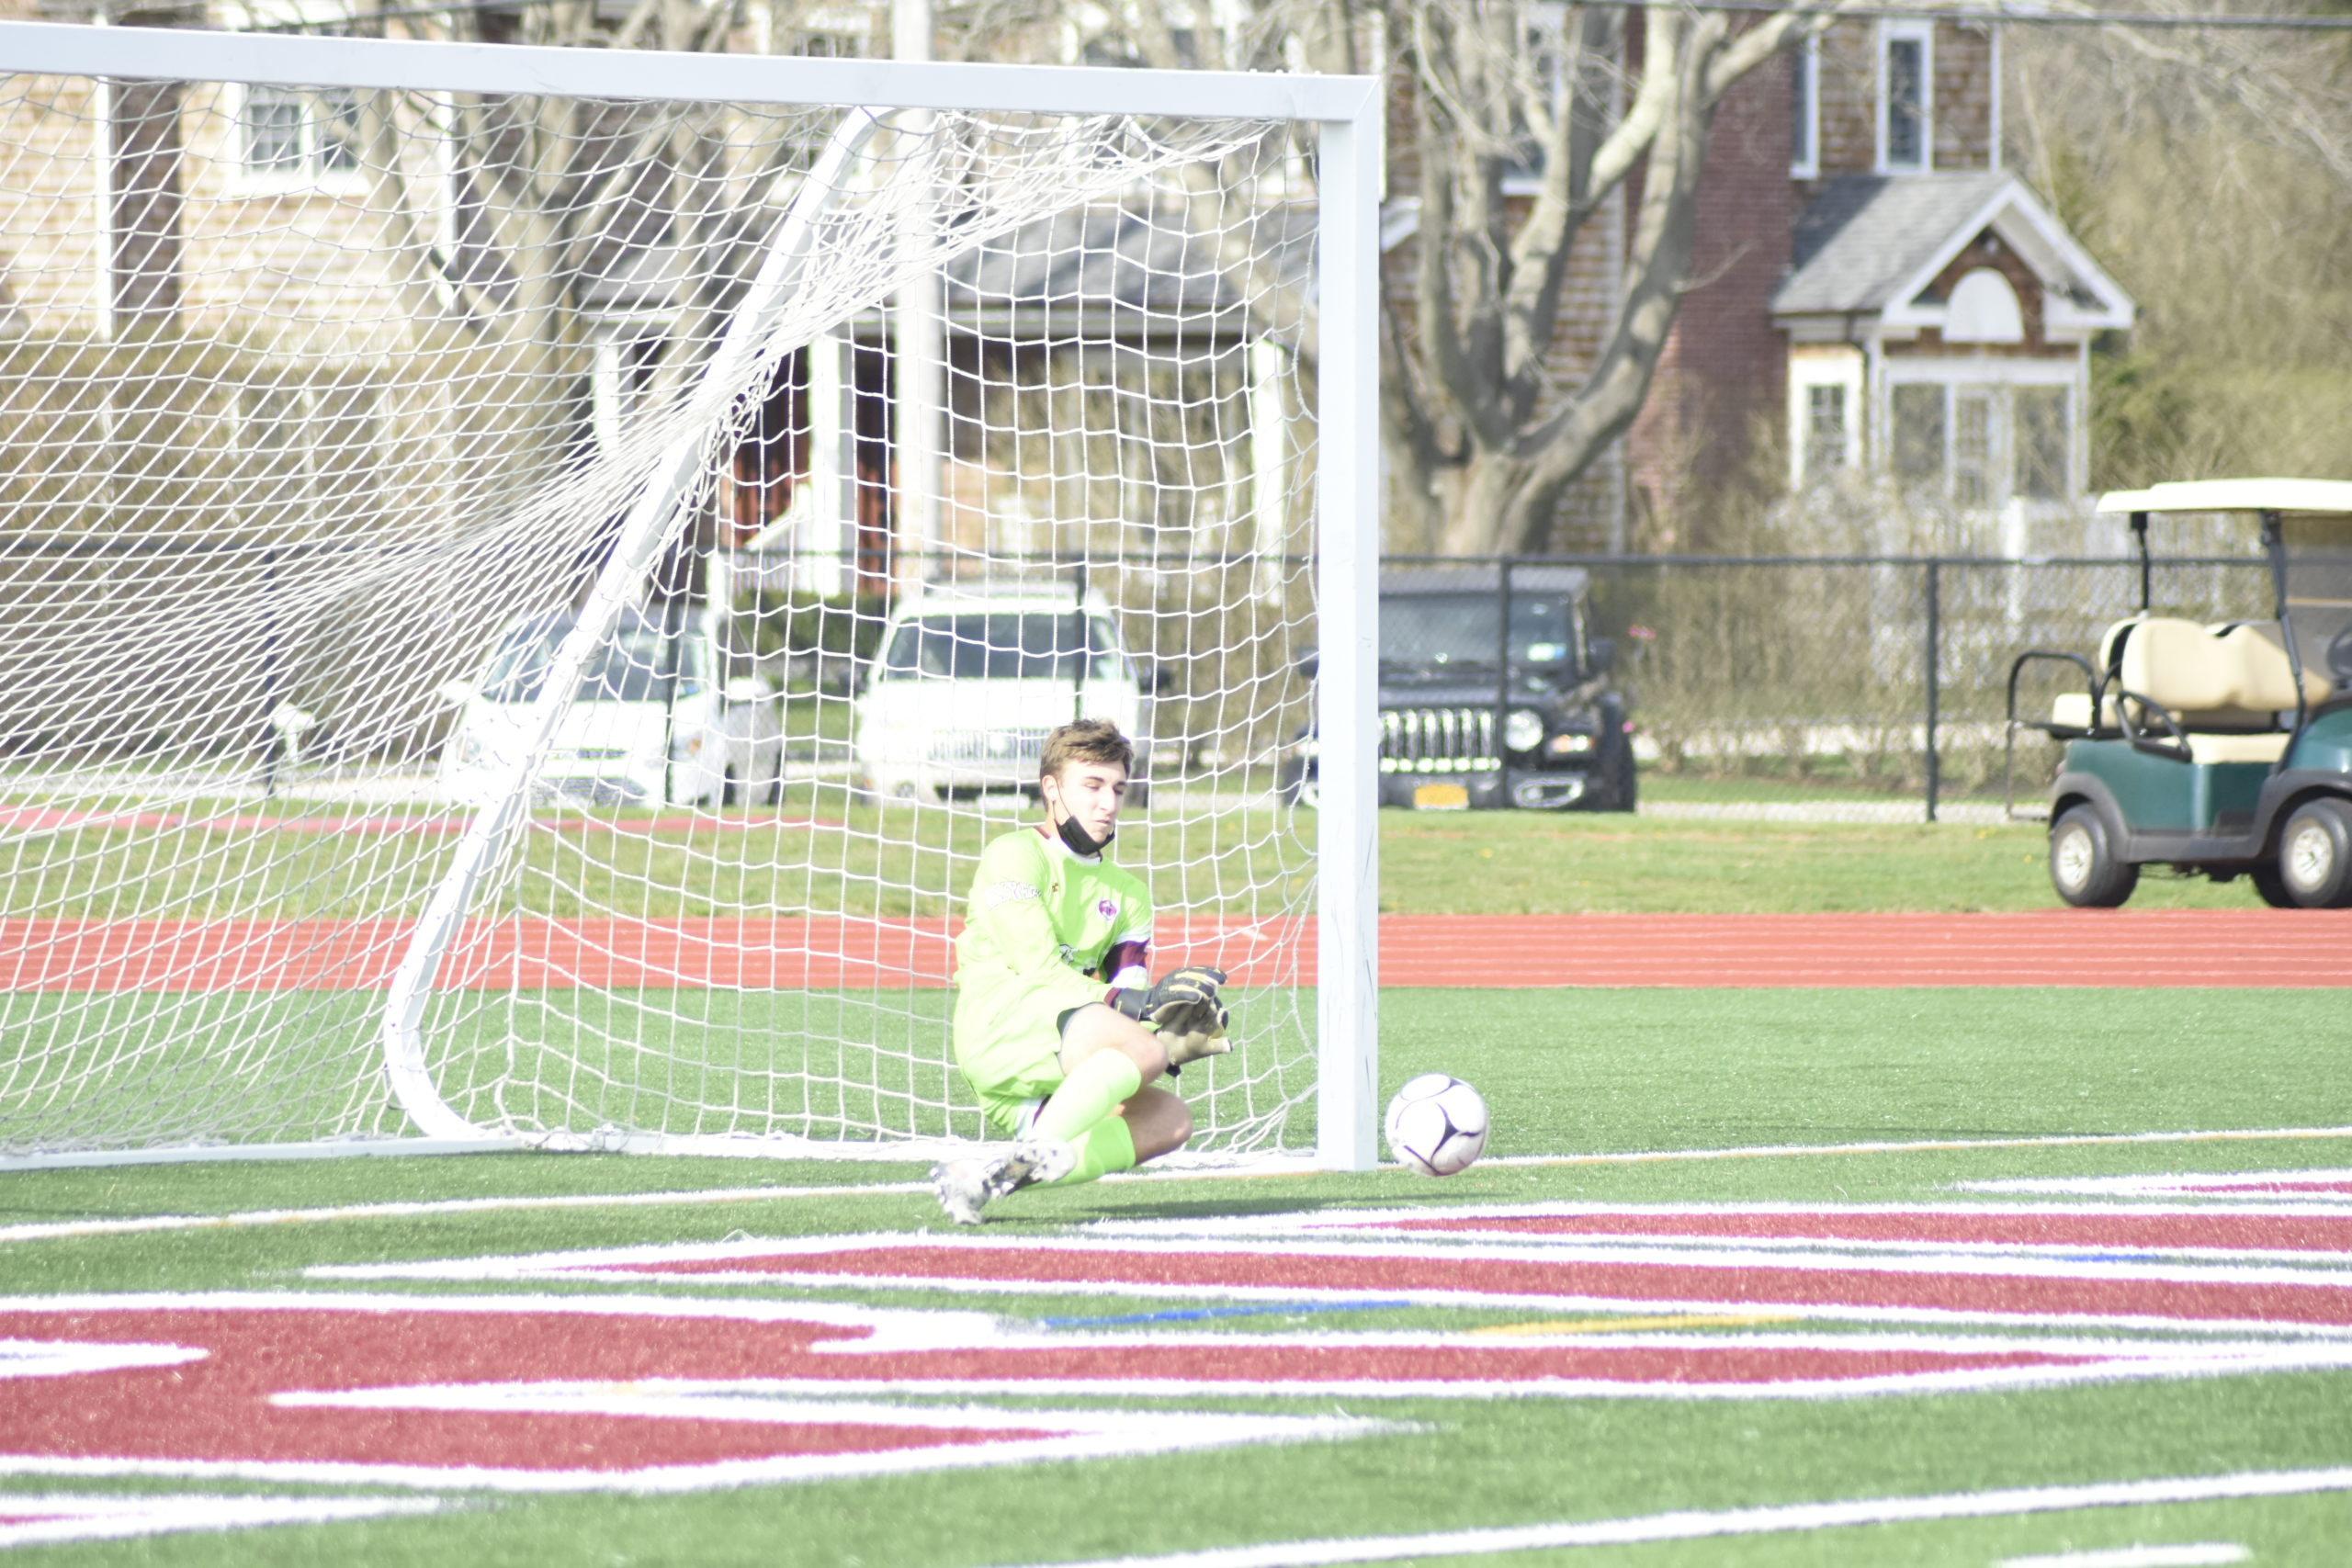 Southampton sophomore goalie Andrew Panza makes a save on a penalty kick early in the first half of Wednesday's game.